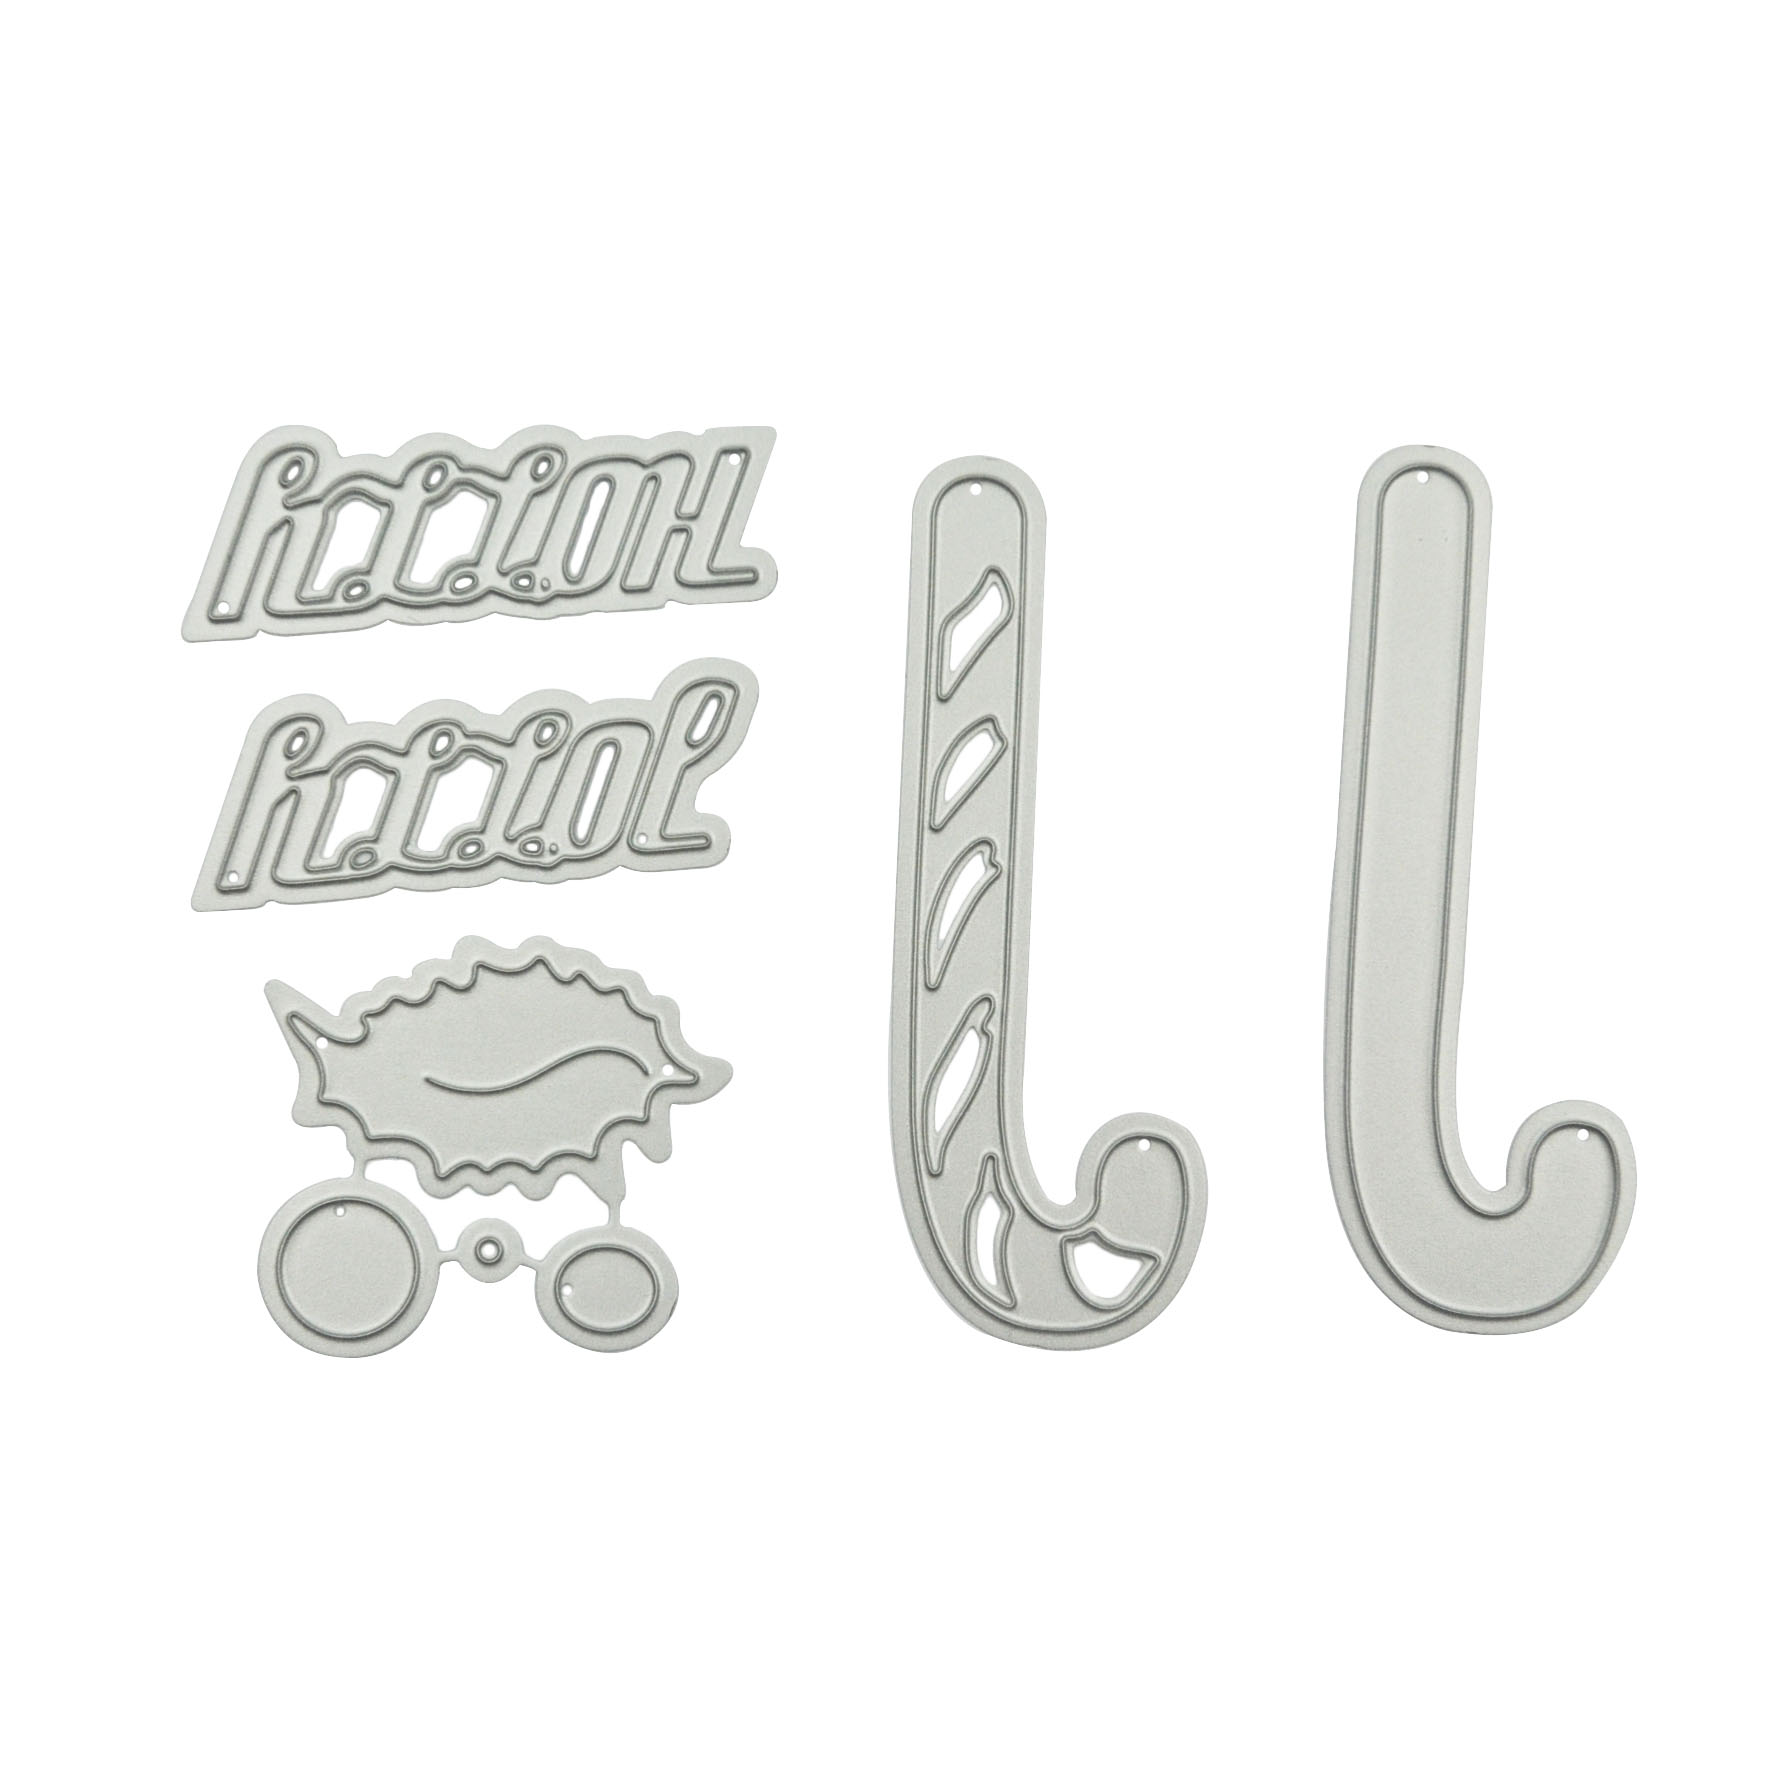 Happymems Christmas Dies Crutch Card Making Stencil Metal Cutting Dies Scrapbooking Silver DIY Words embossing Crafts in Cutting Dies from Home Garden